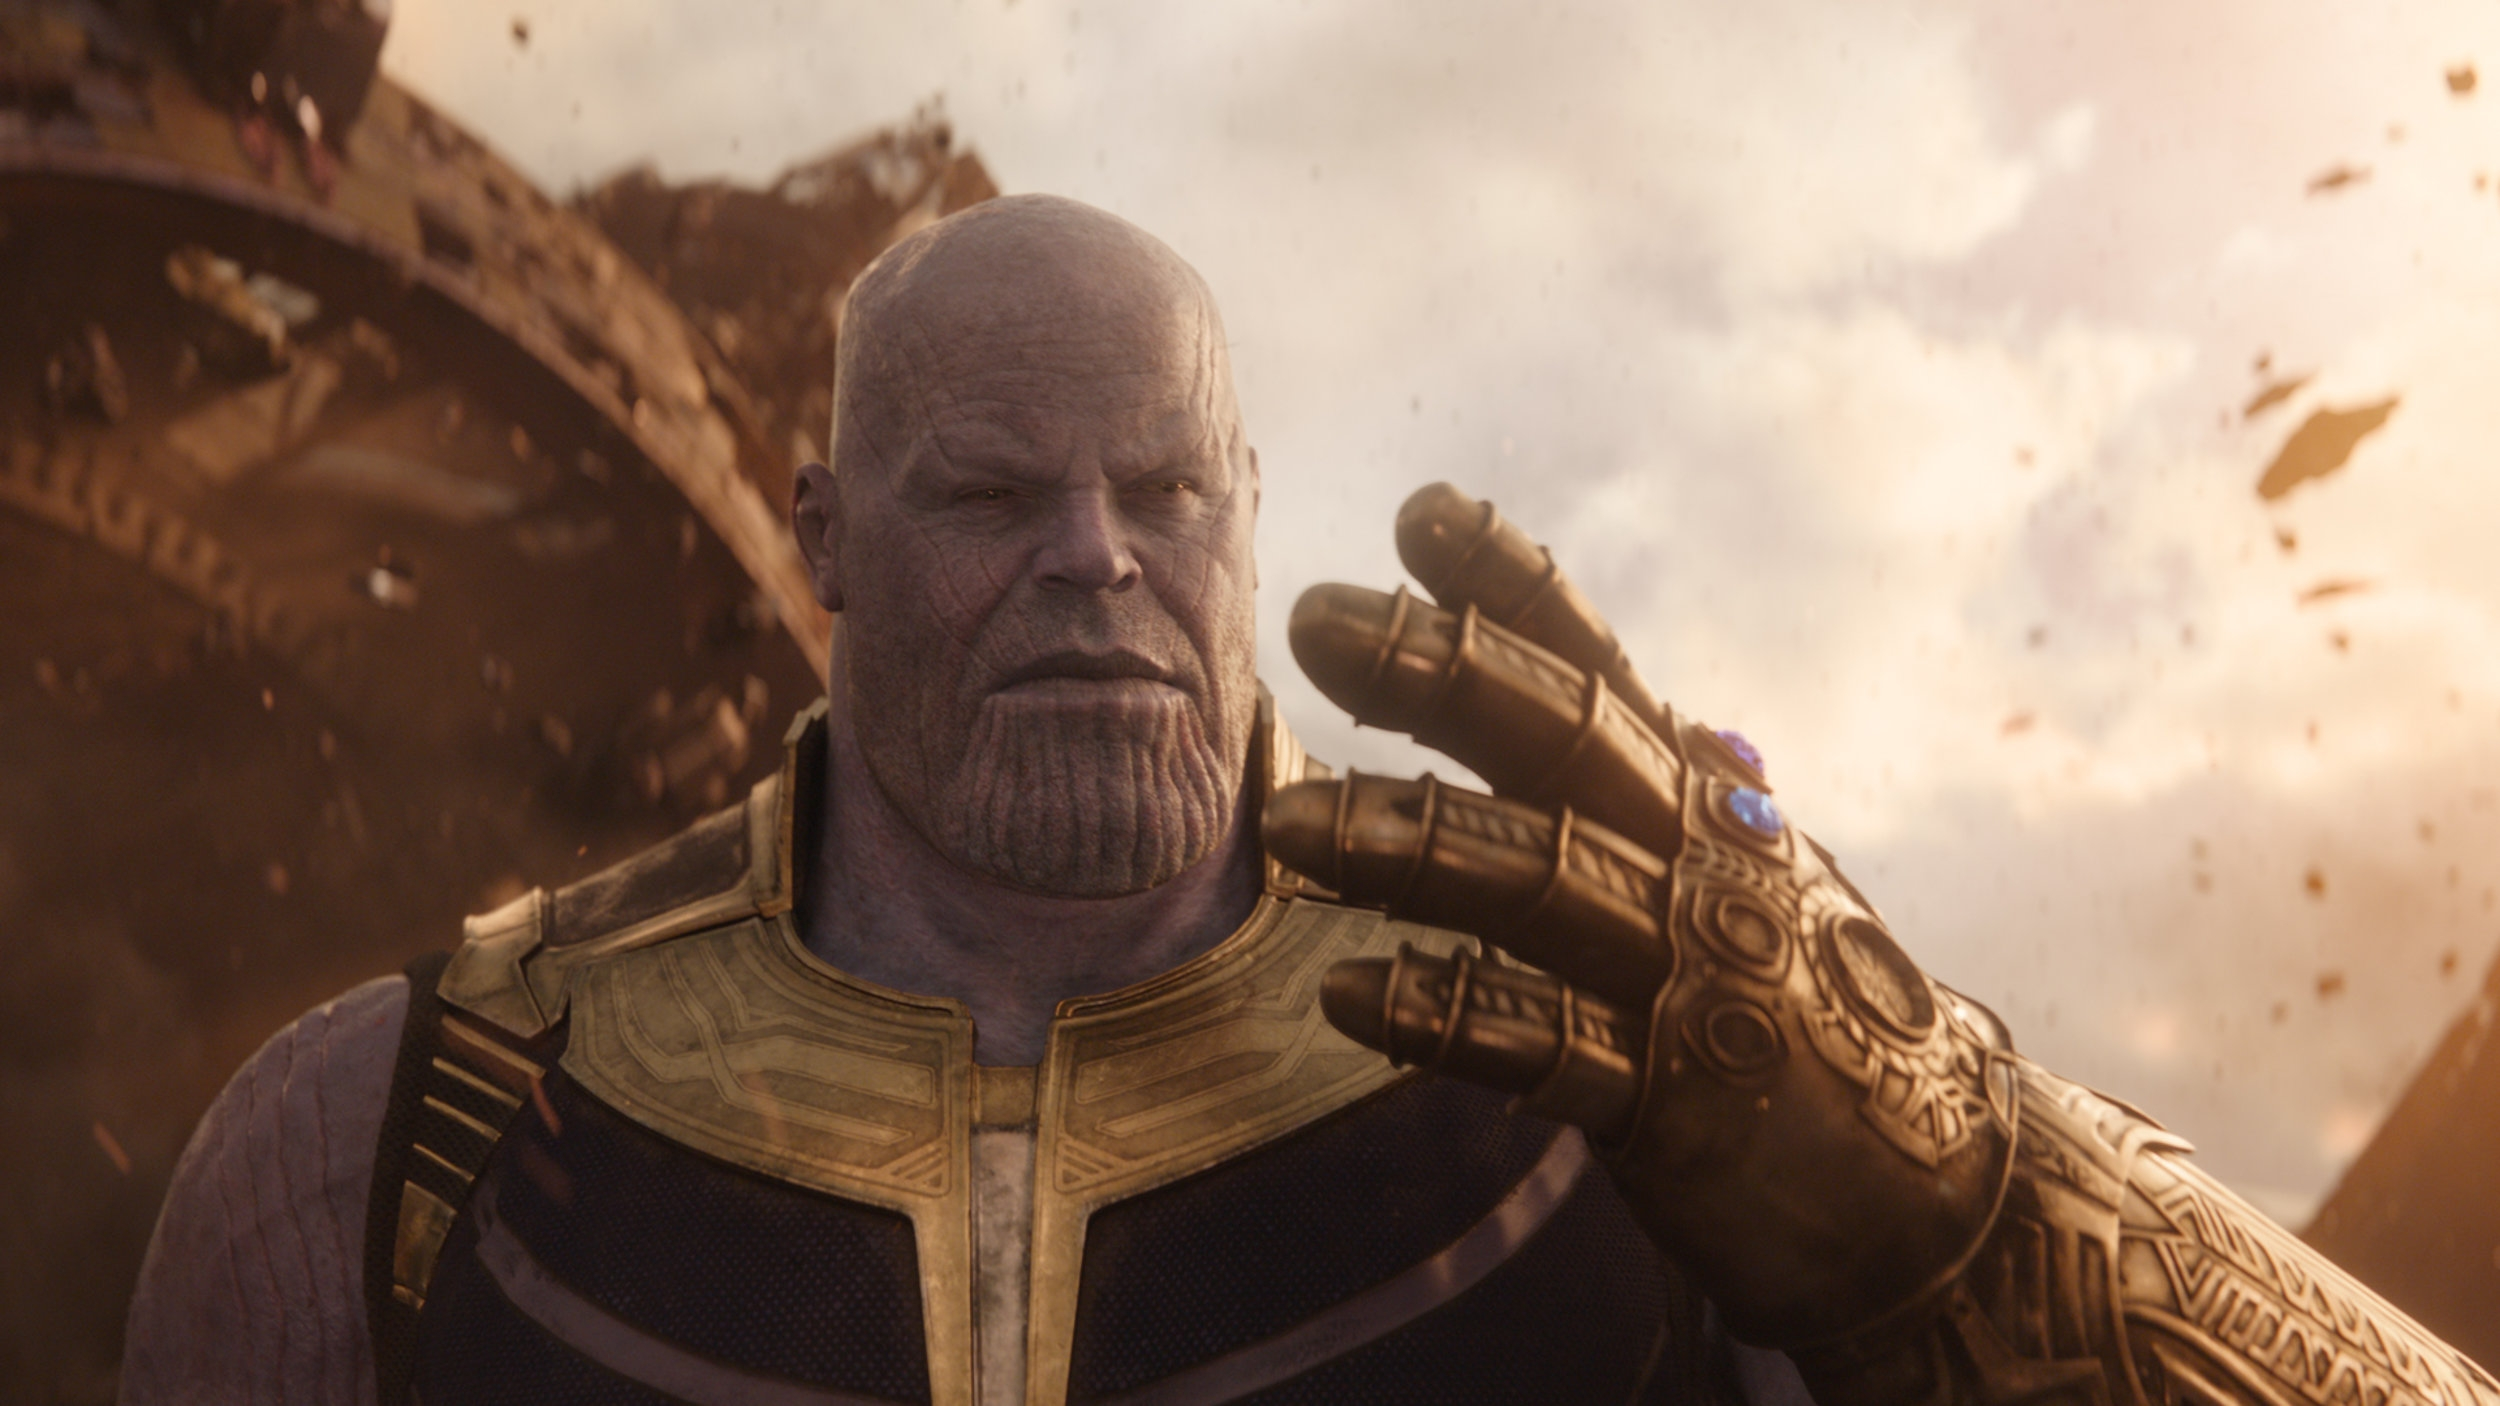 Josh Brolin's Thanos is around whom the film mainly revolves